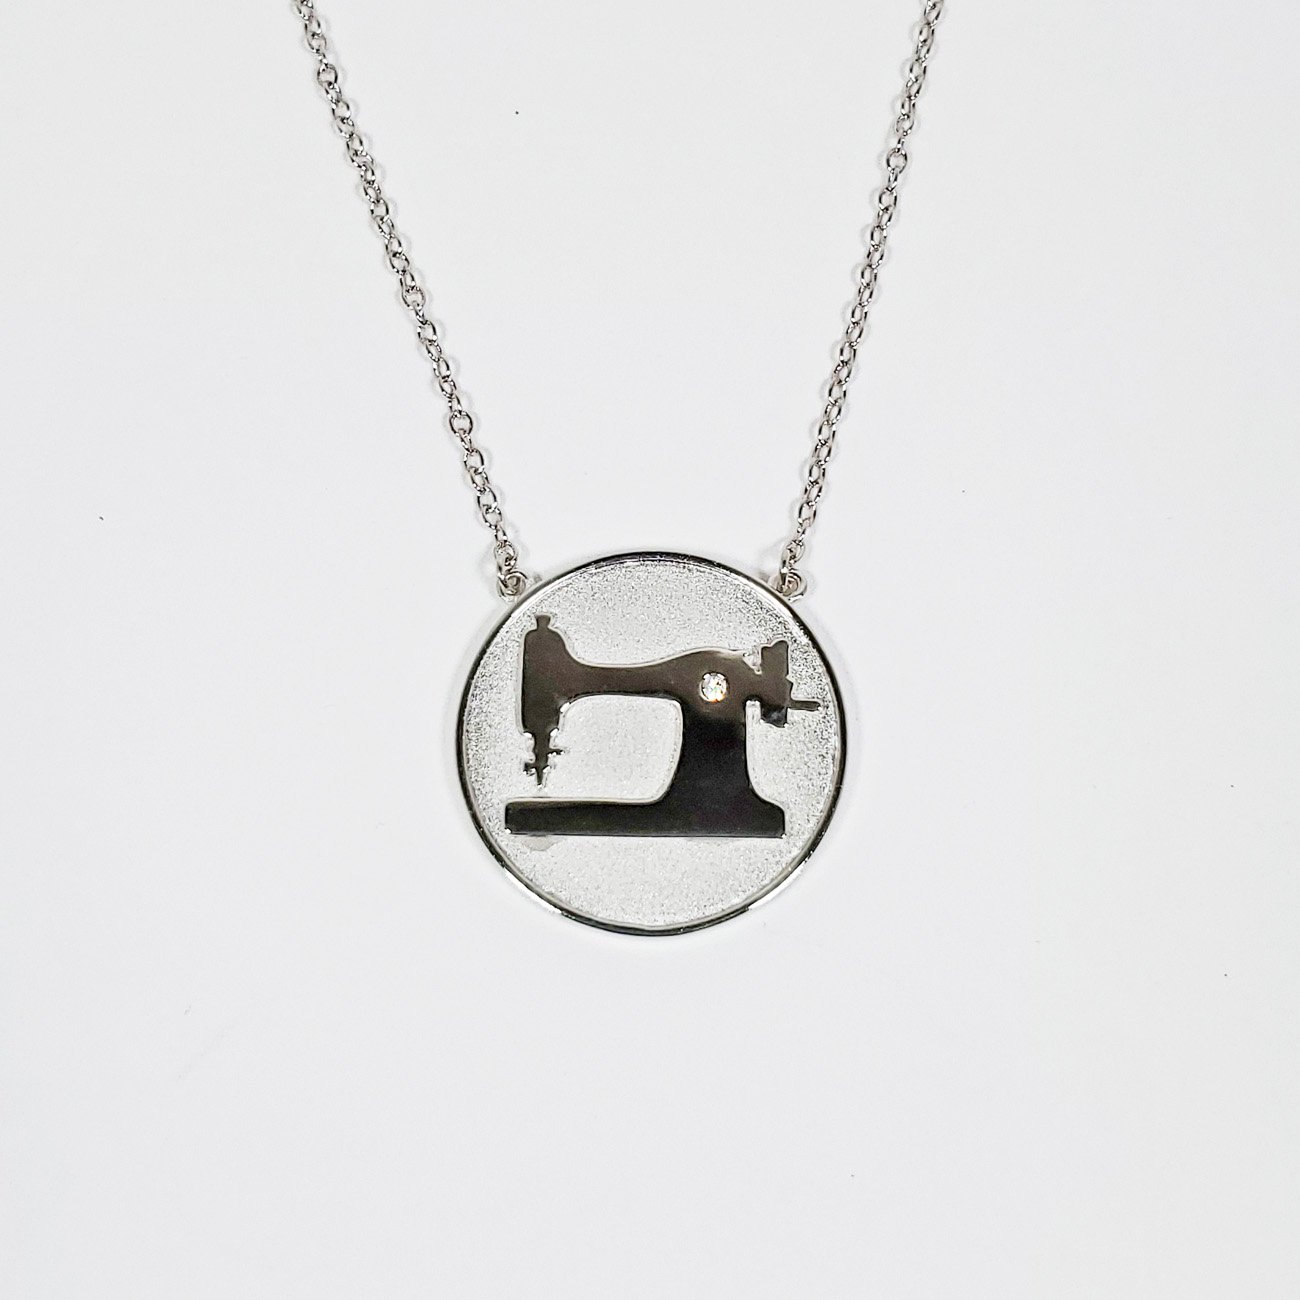 Sewing Machine Coin Pendant Silver